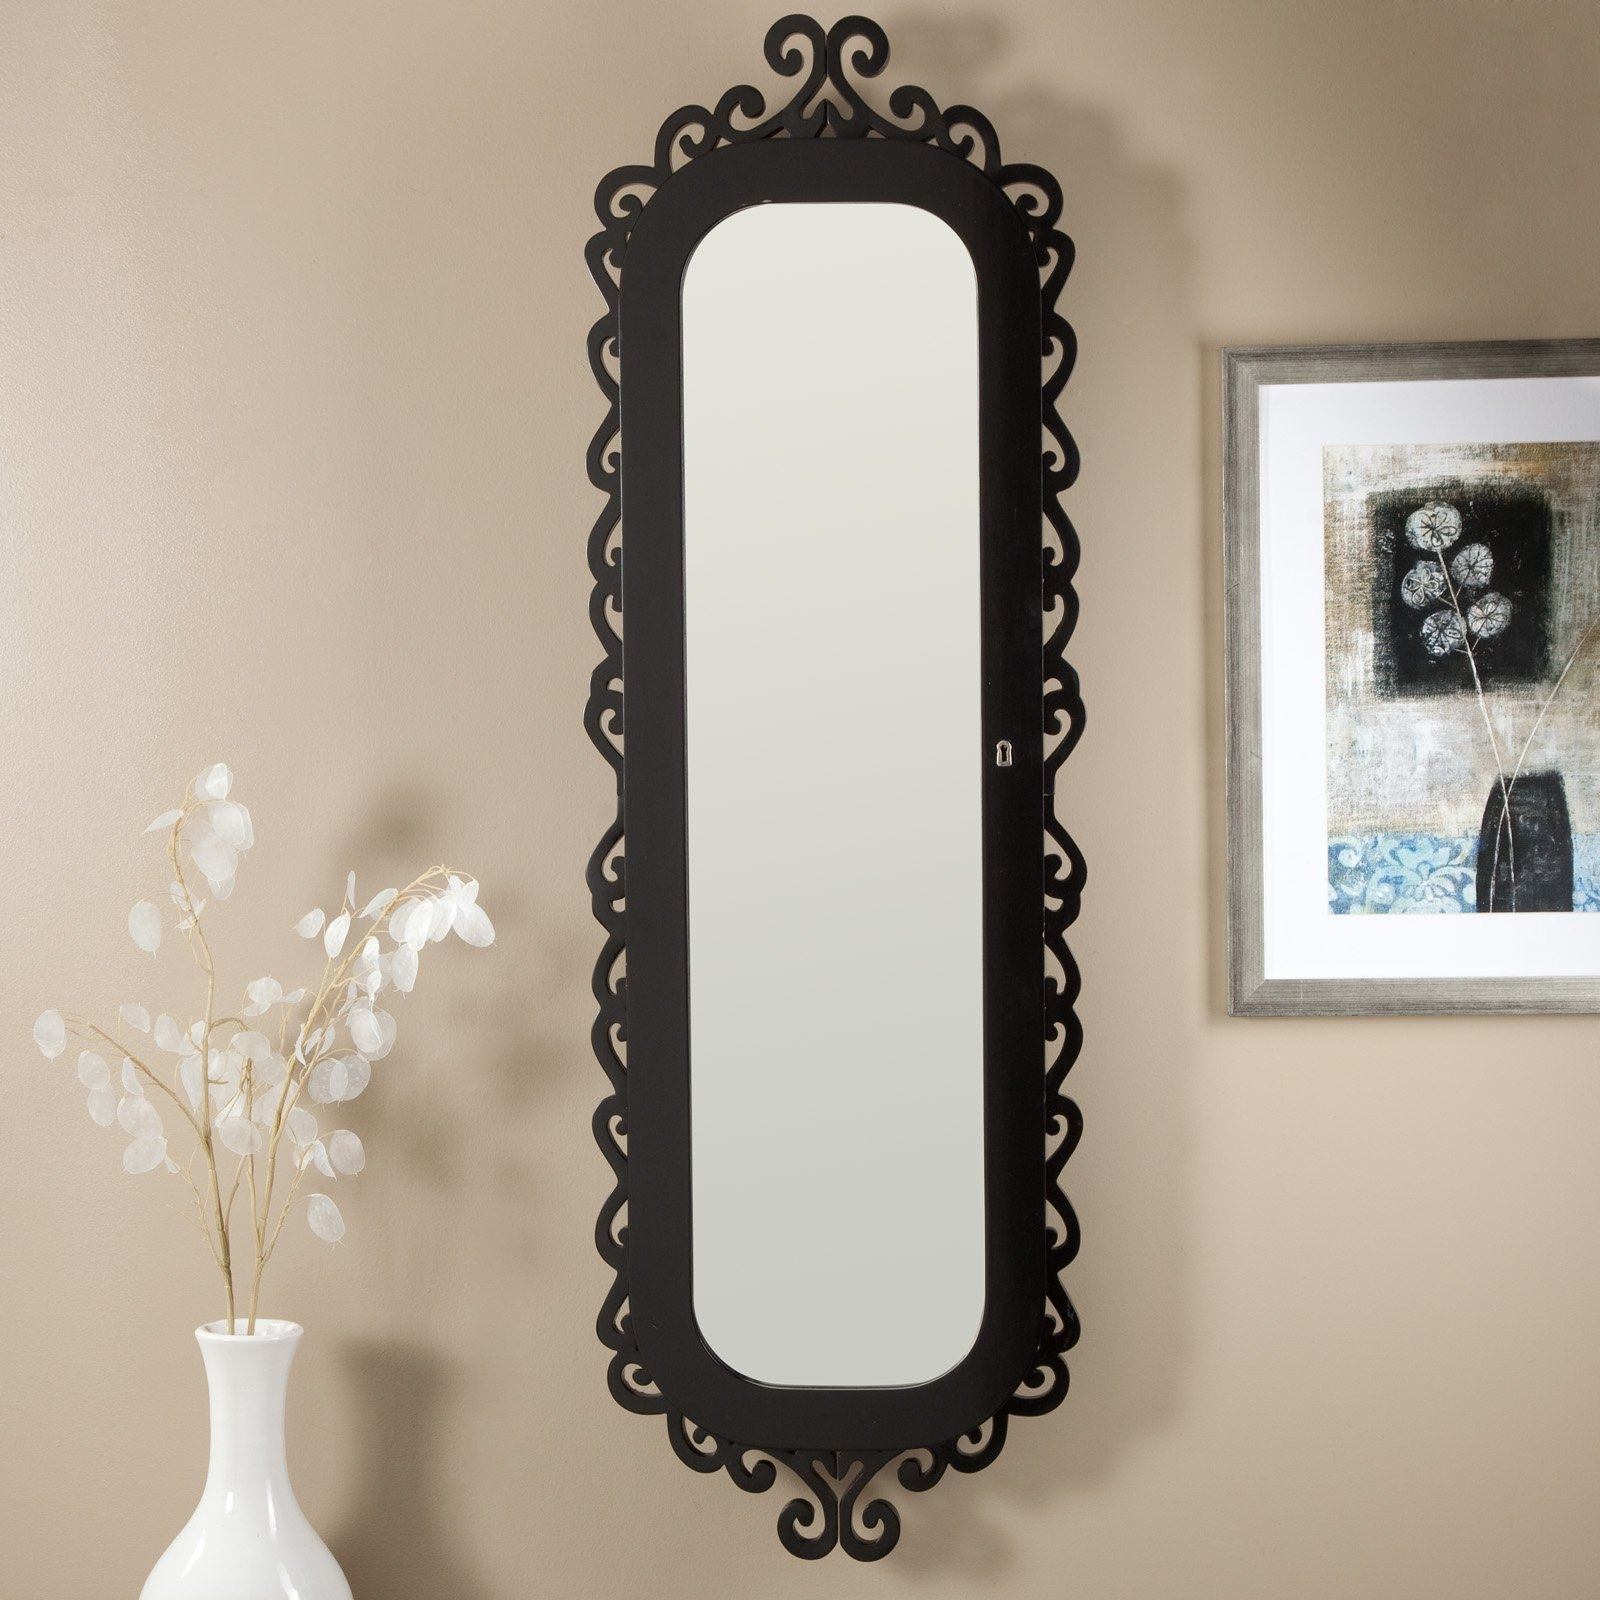 Iron Wall Mirror Decor